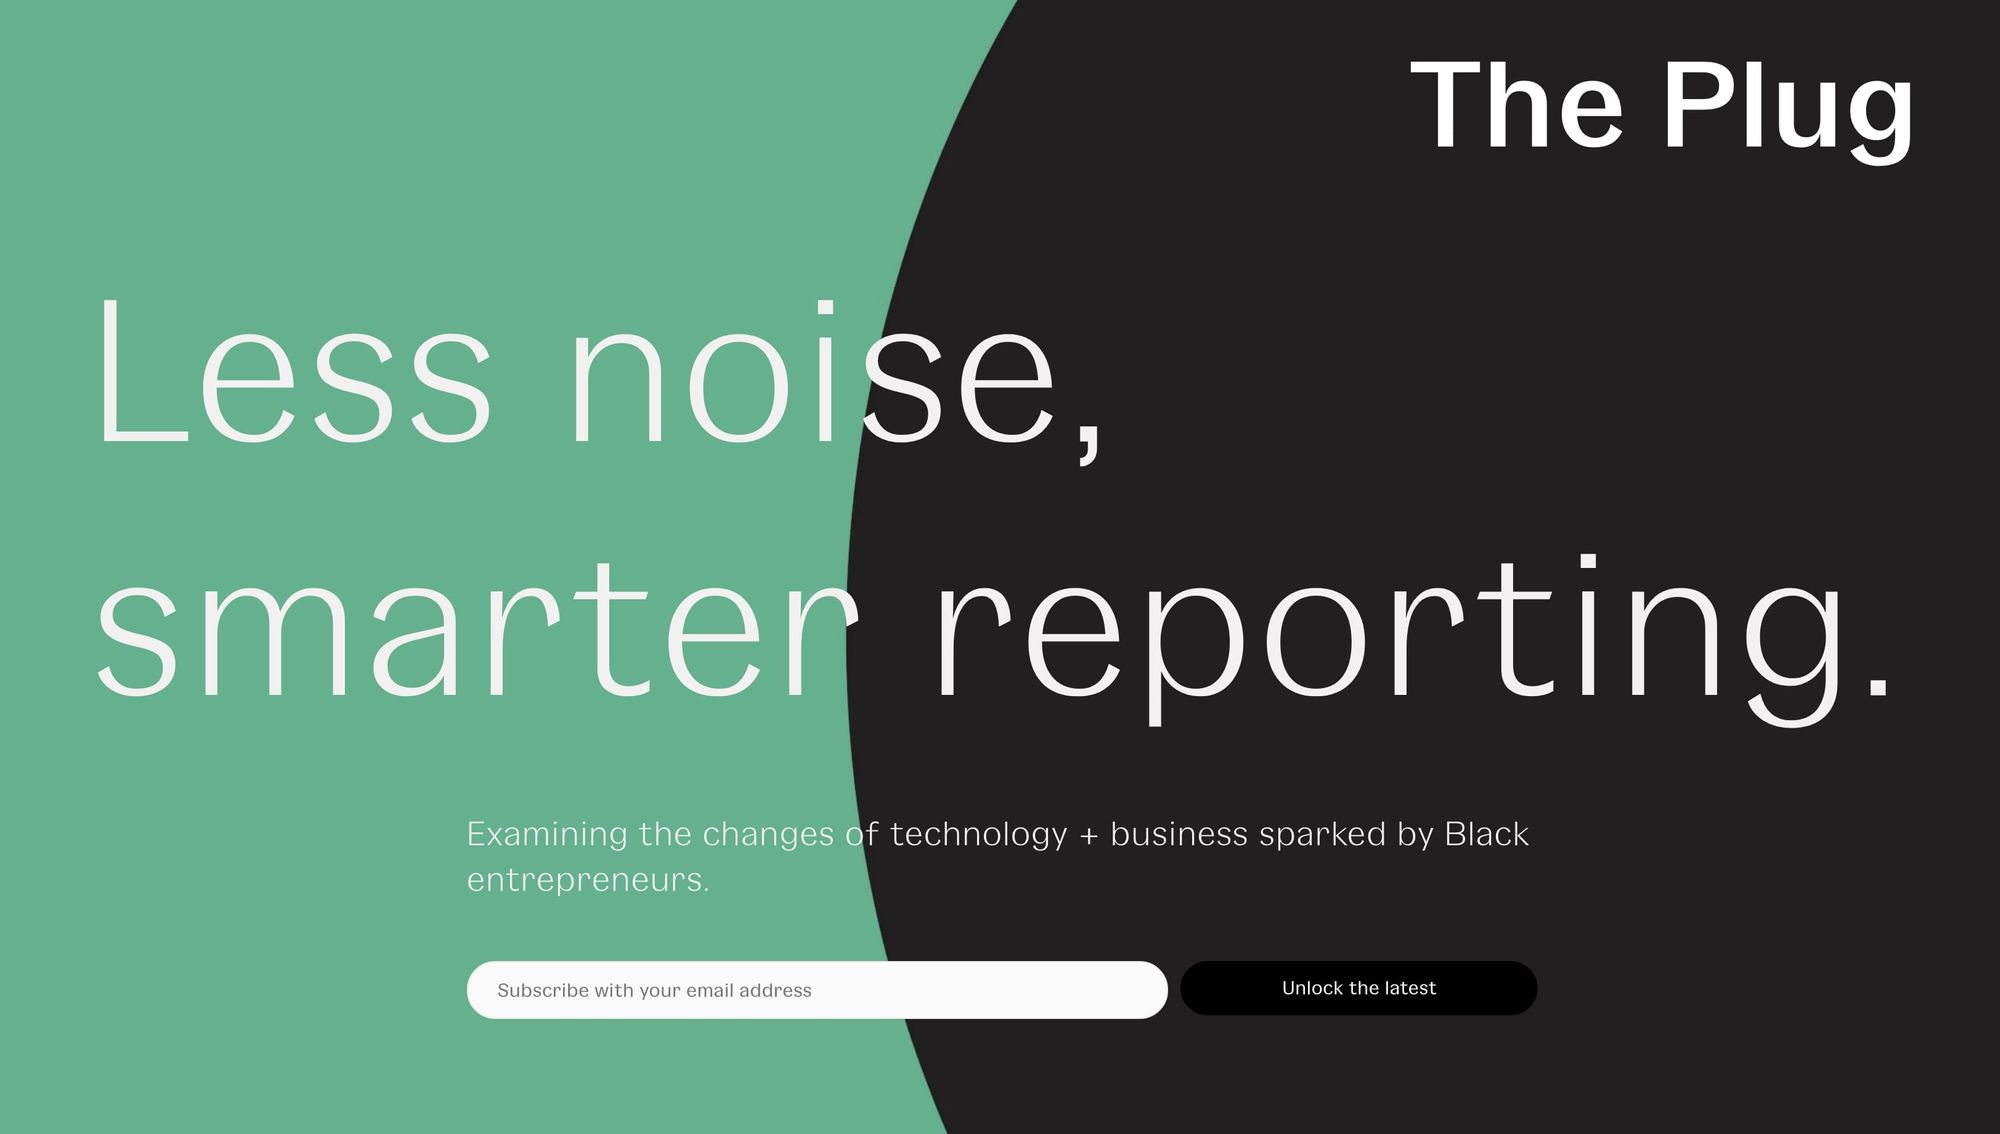 """The Plug getting to the point with a punchy headline of """"Less noise, smarter reporting"""""""